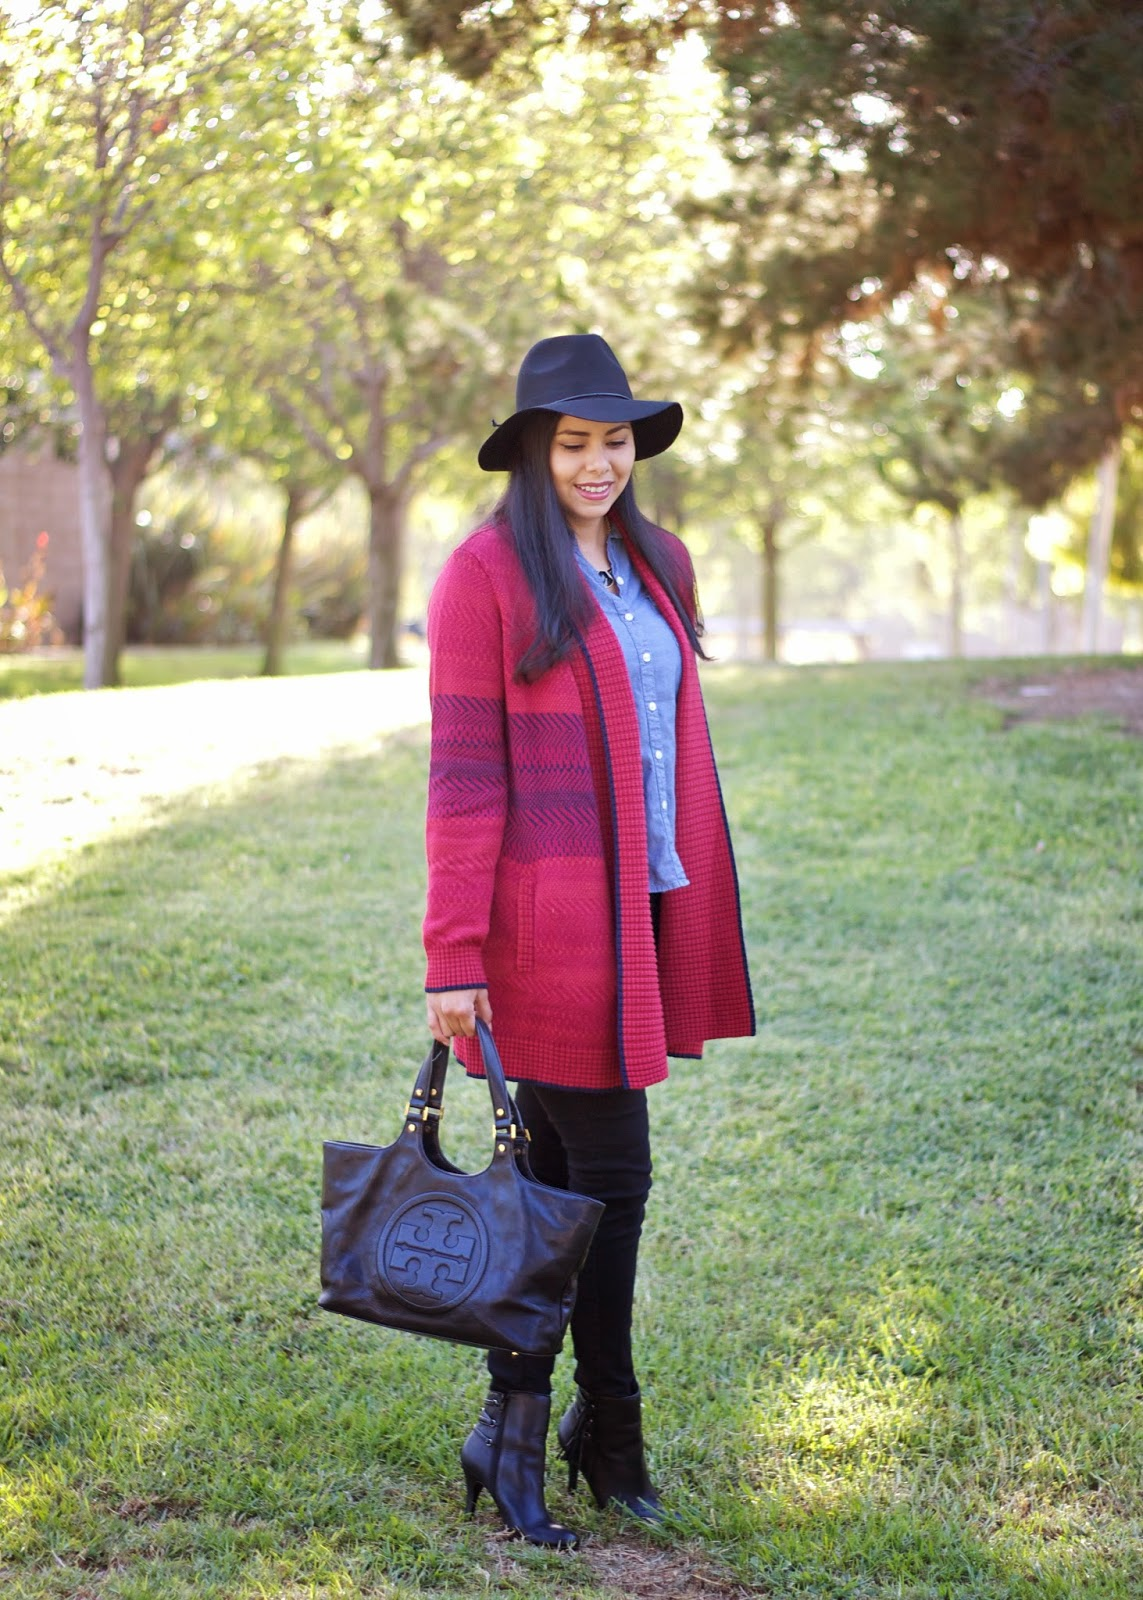 how to wear a long knitted sweater, tory buch black satchel, how to wear a black satchel, how to wear a tory burch purse, justfab luxe booties